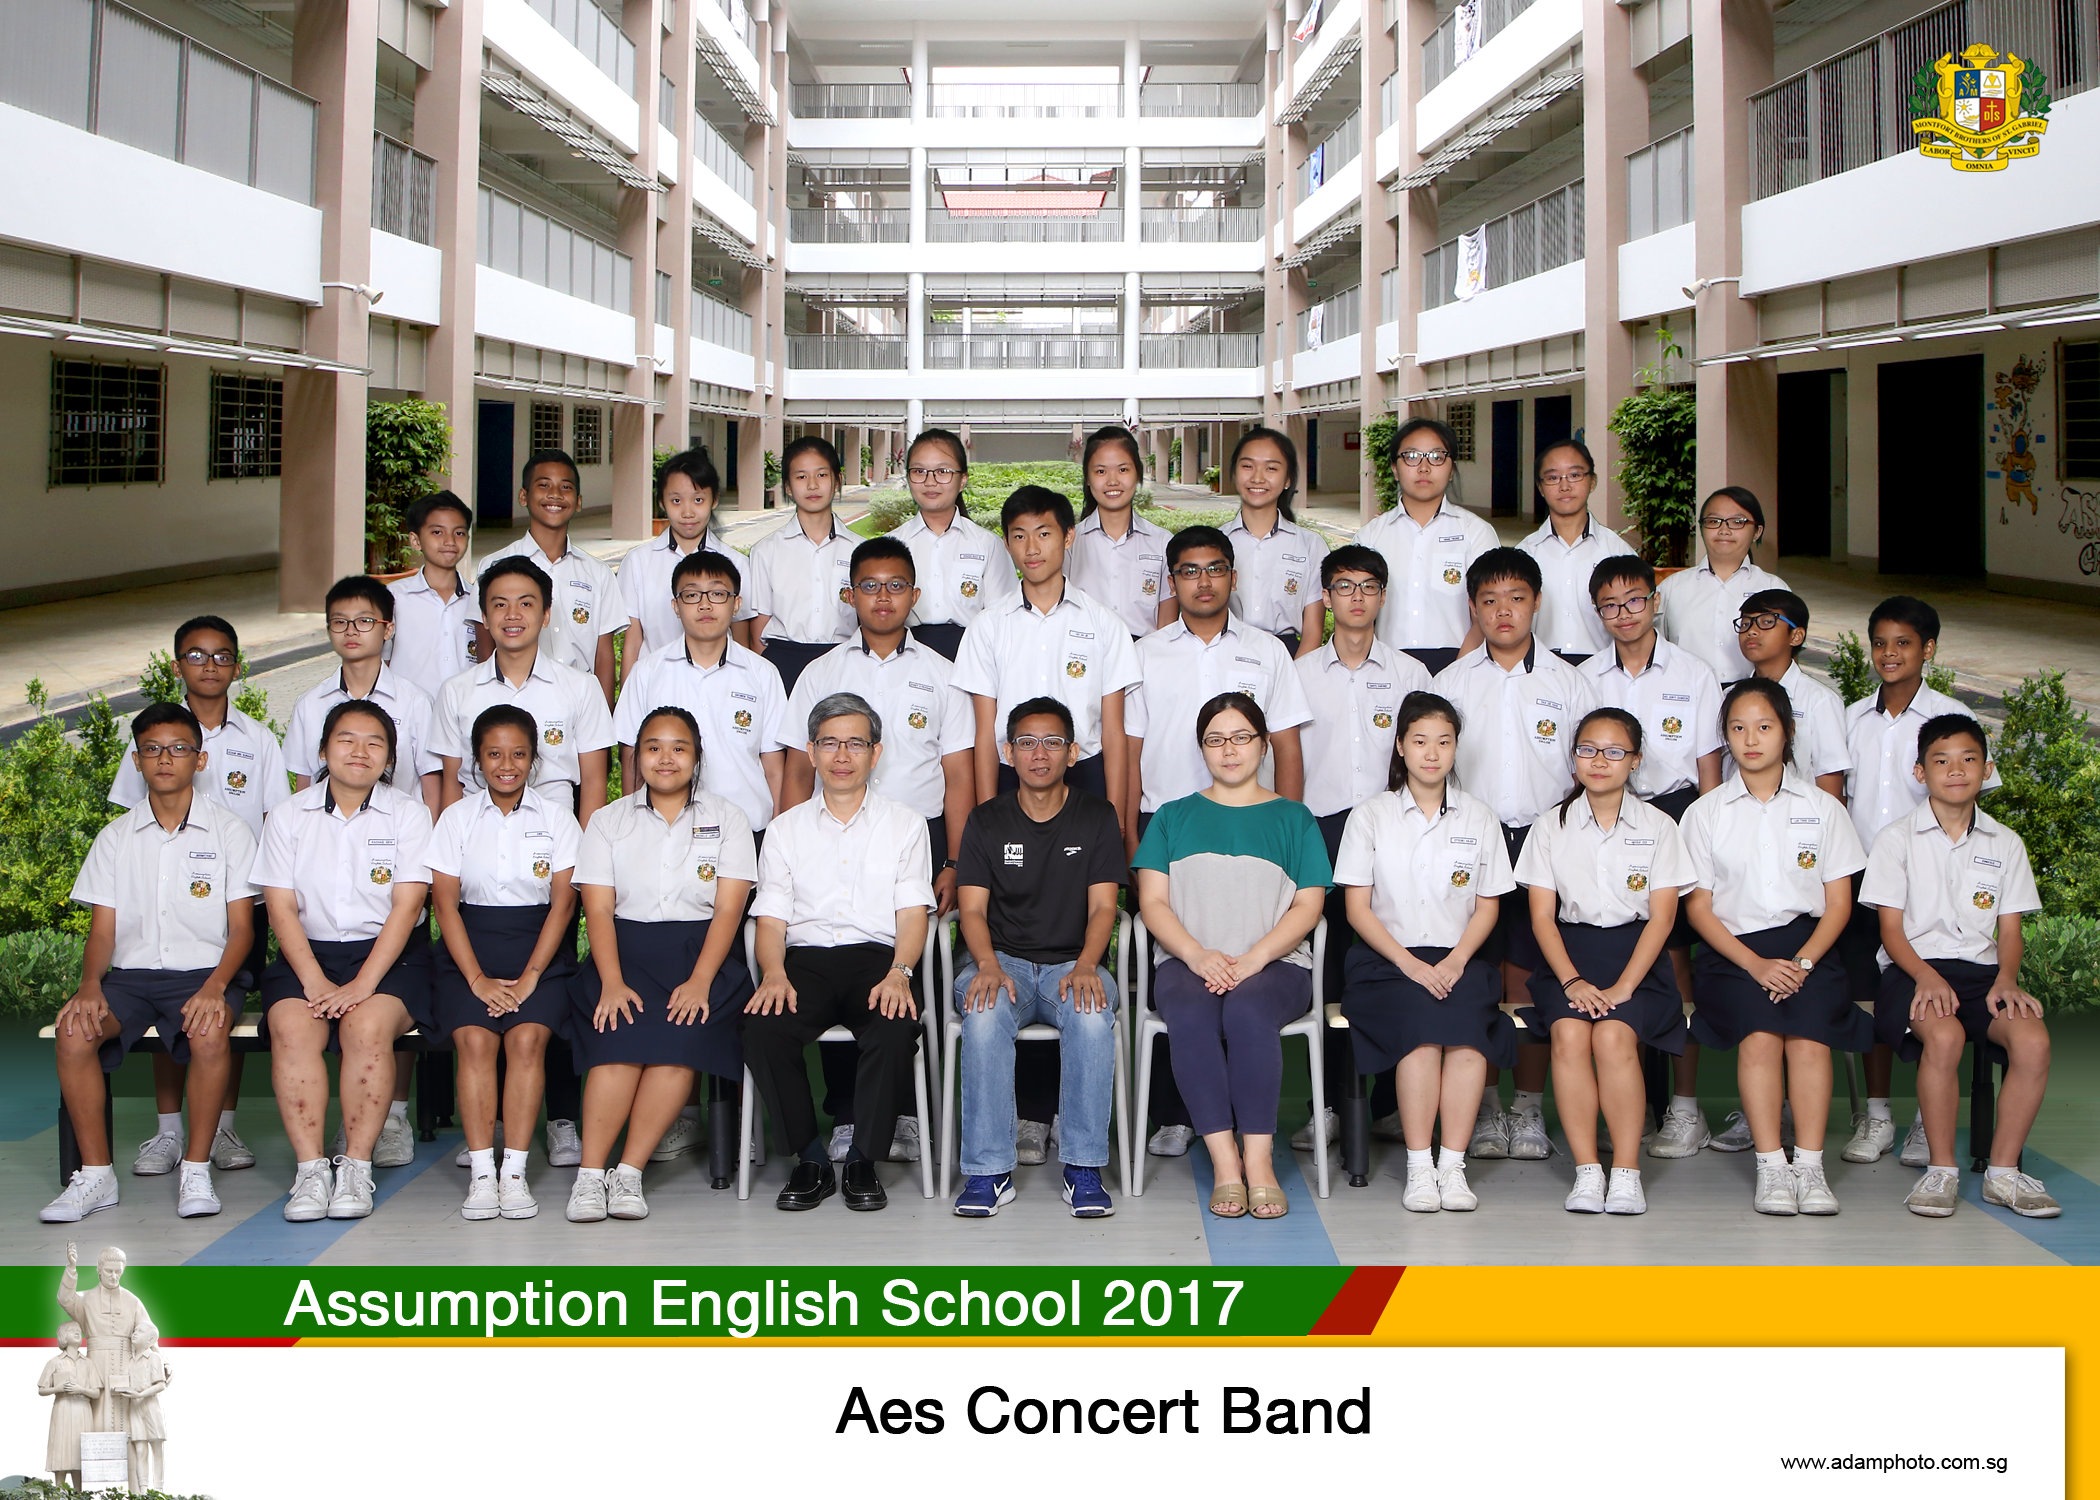 aes concert band 2.jpg